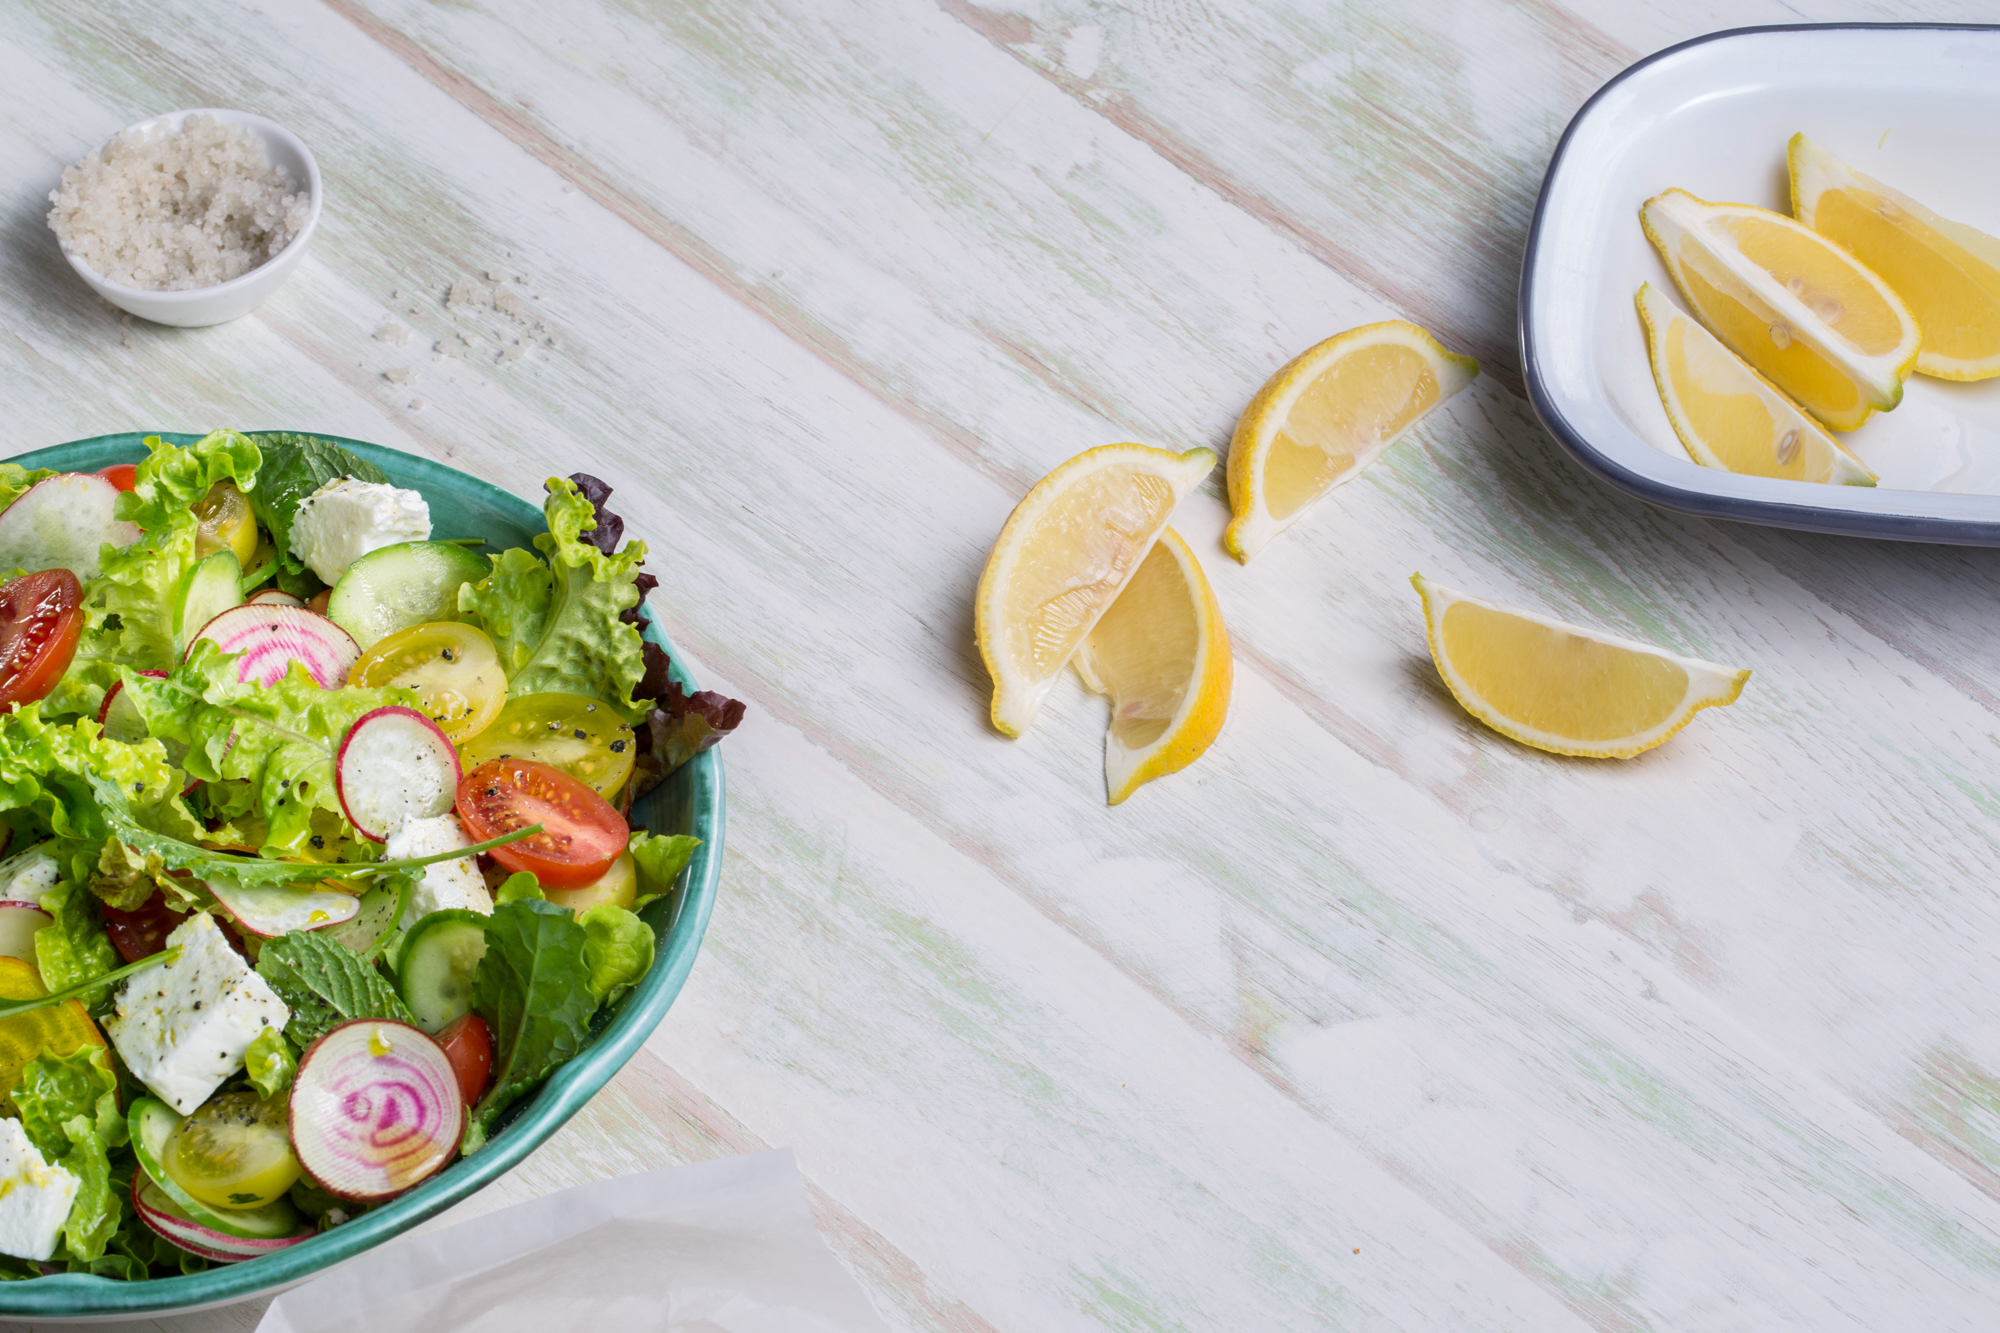 Fresh Salad with Lemon Wedges